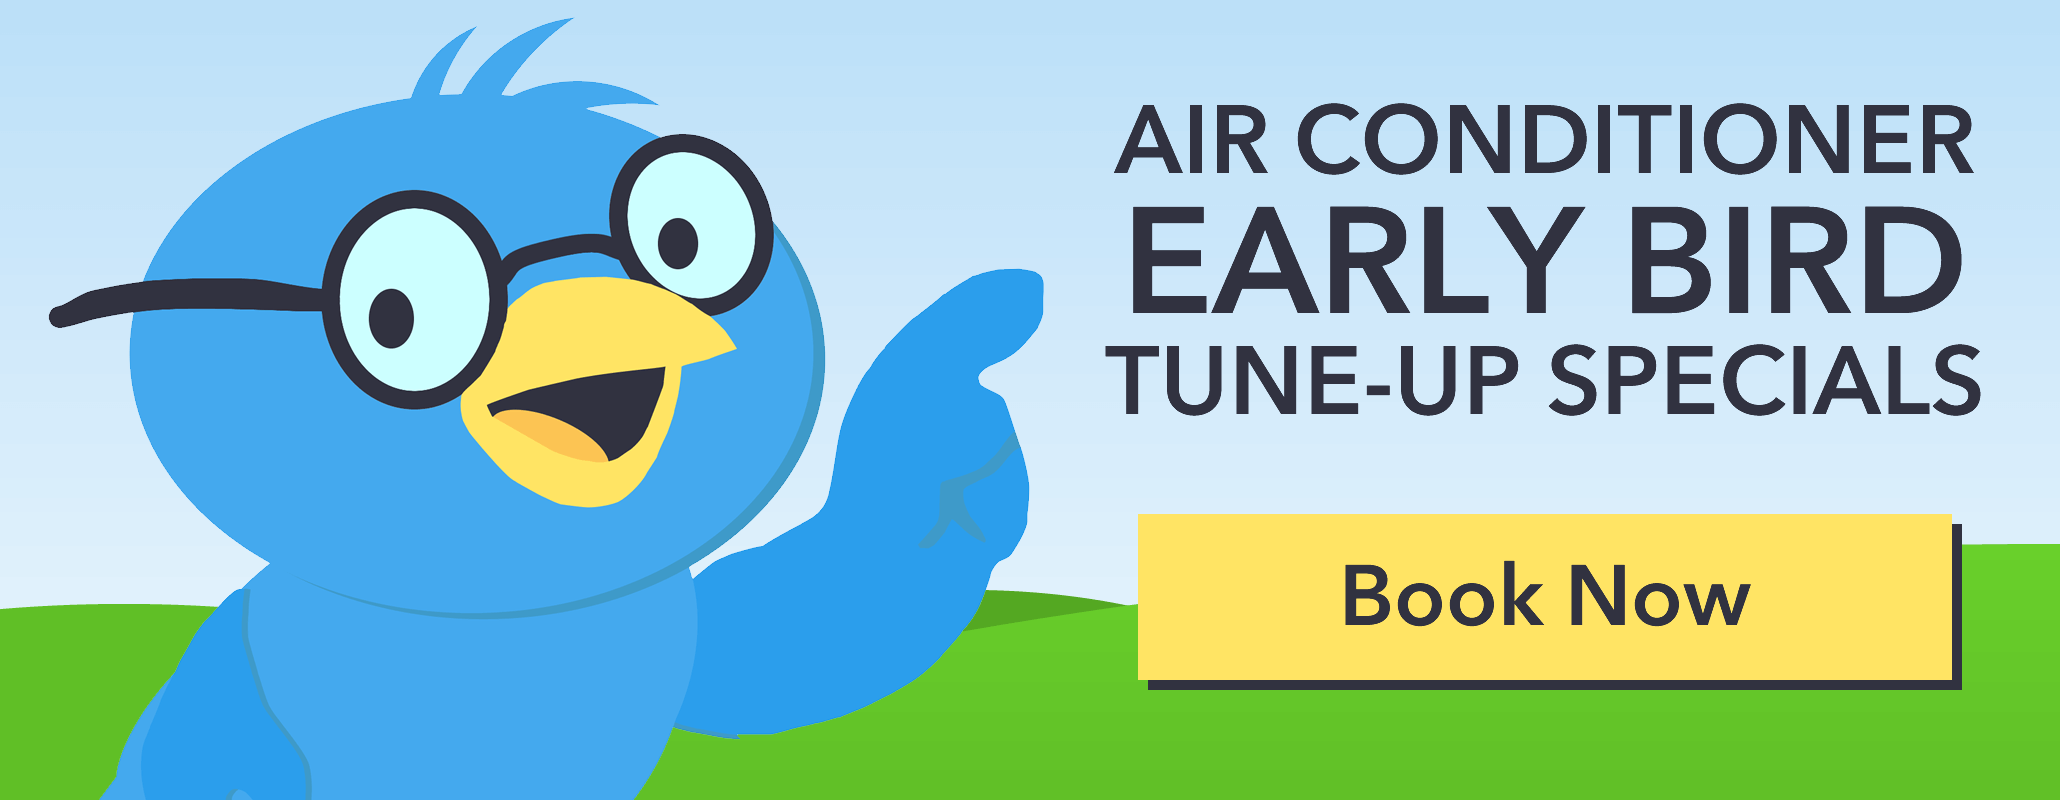 Schedule your Air Conditioner Tune-Up Early and save $30